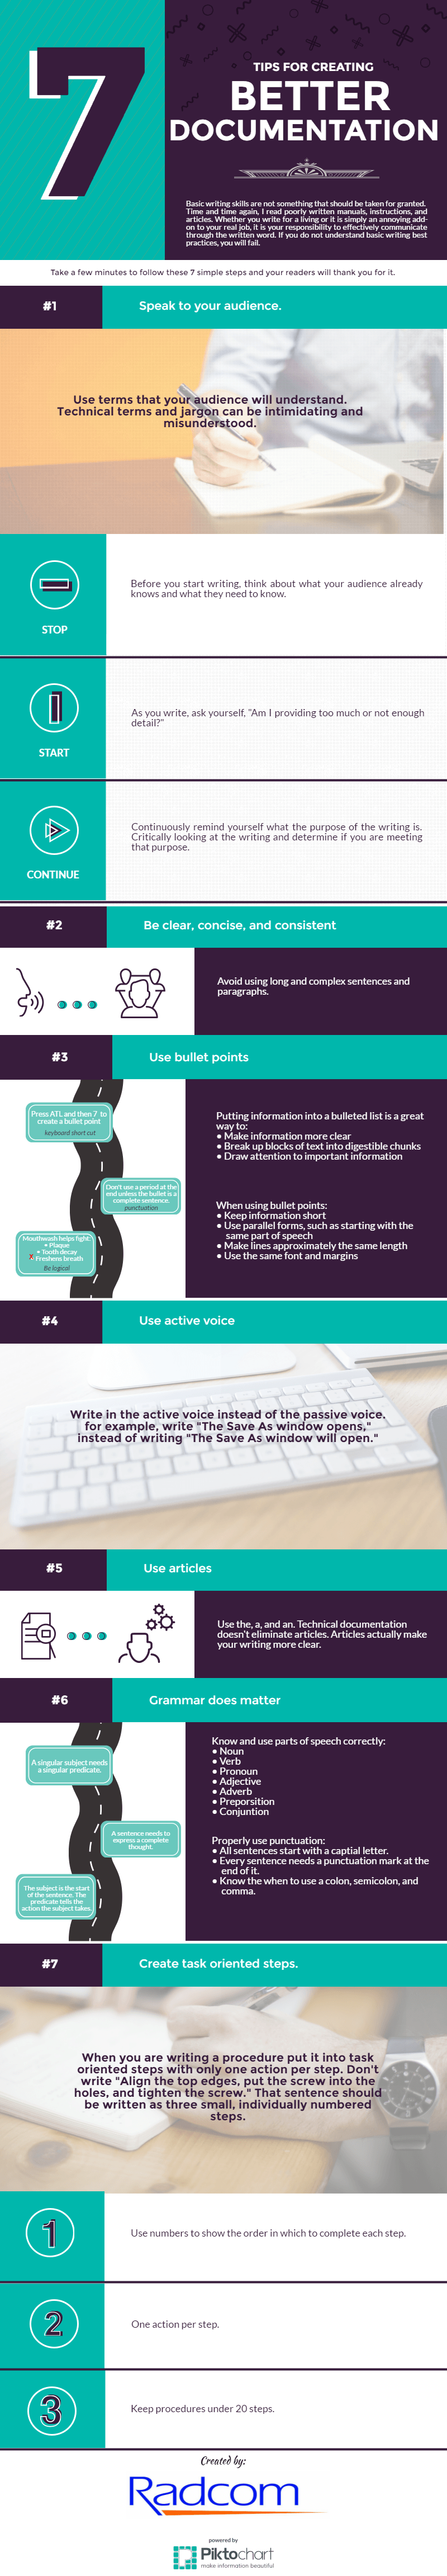 7 Tips for Better Documentation Infographic